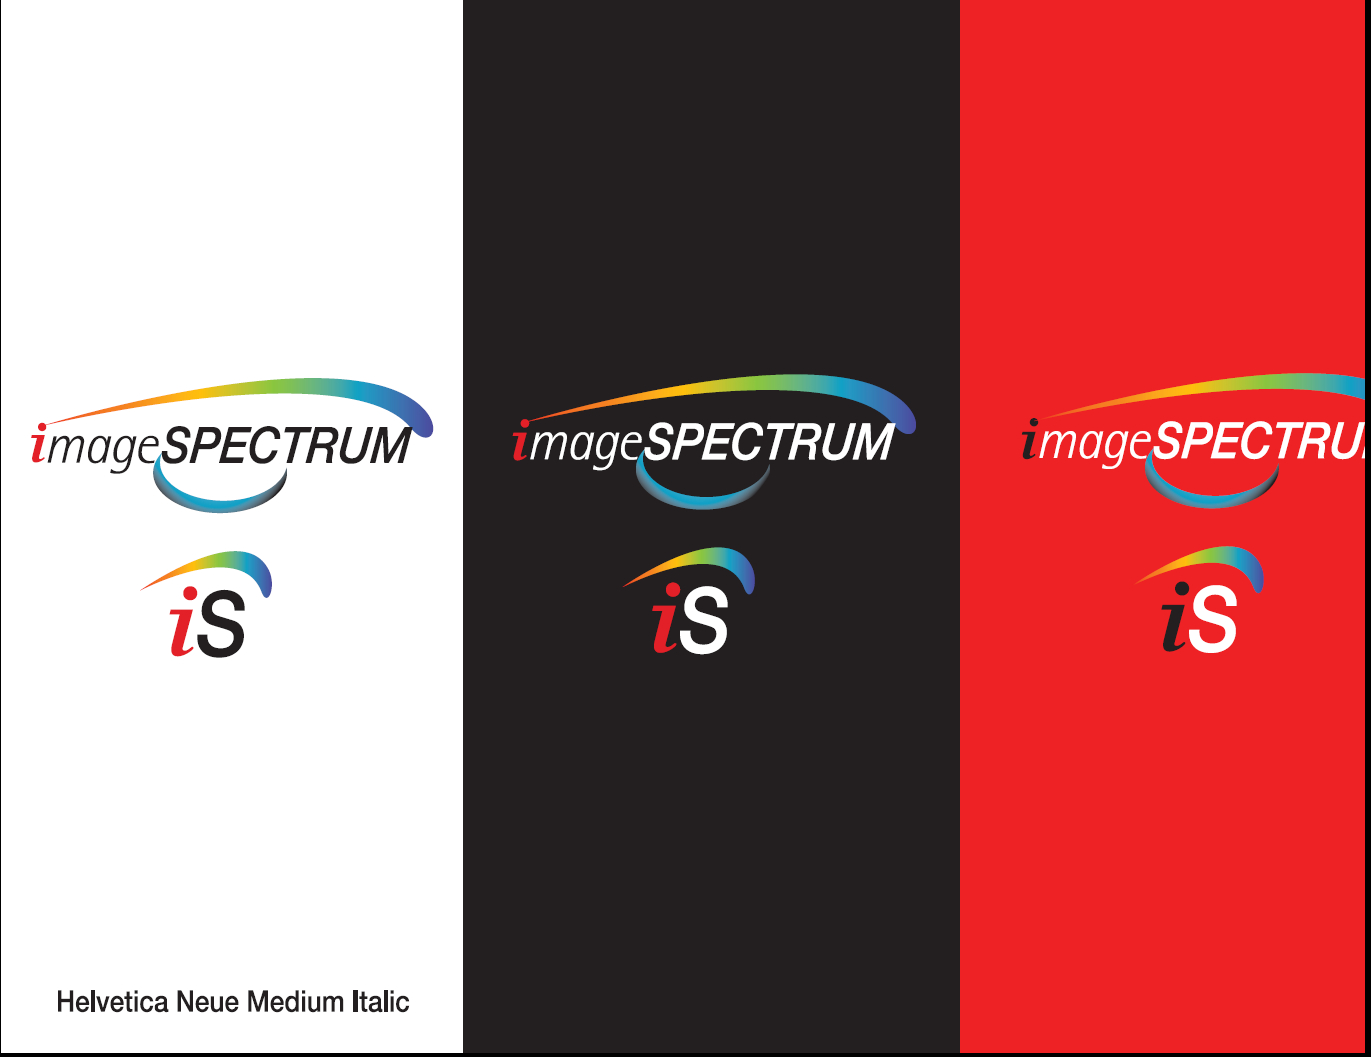 Canon imageSpectrum Software